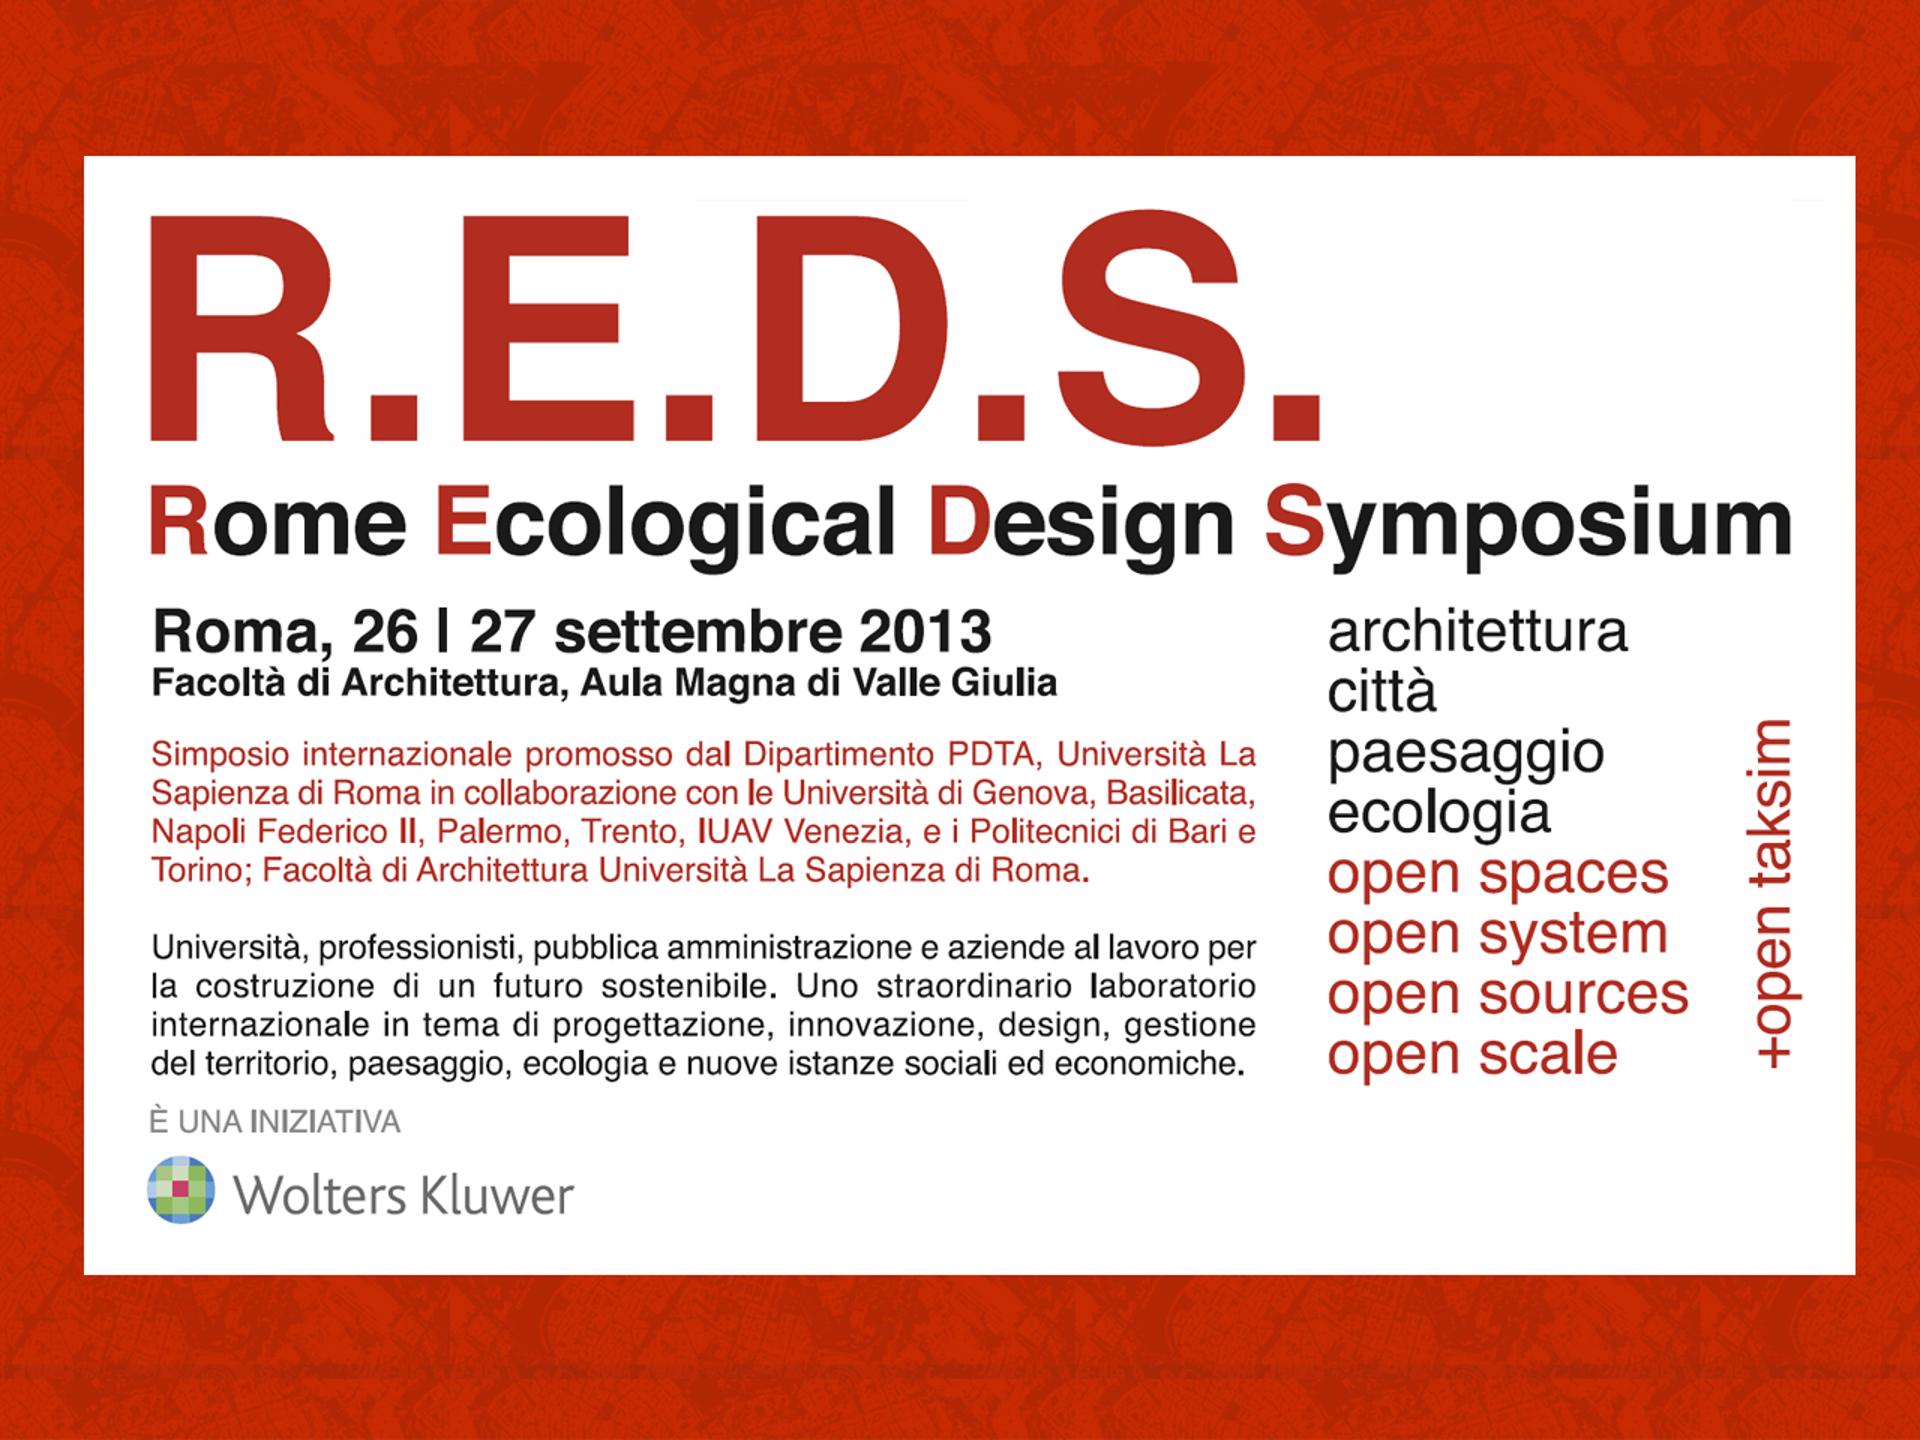 MVRDV - Lecture: Winy Maas in Rome 'Open Systems'